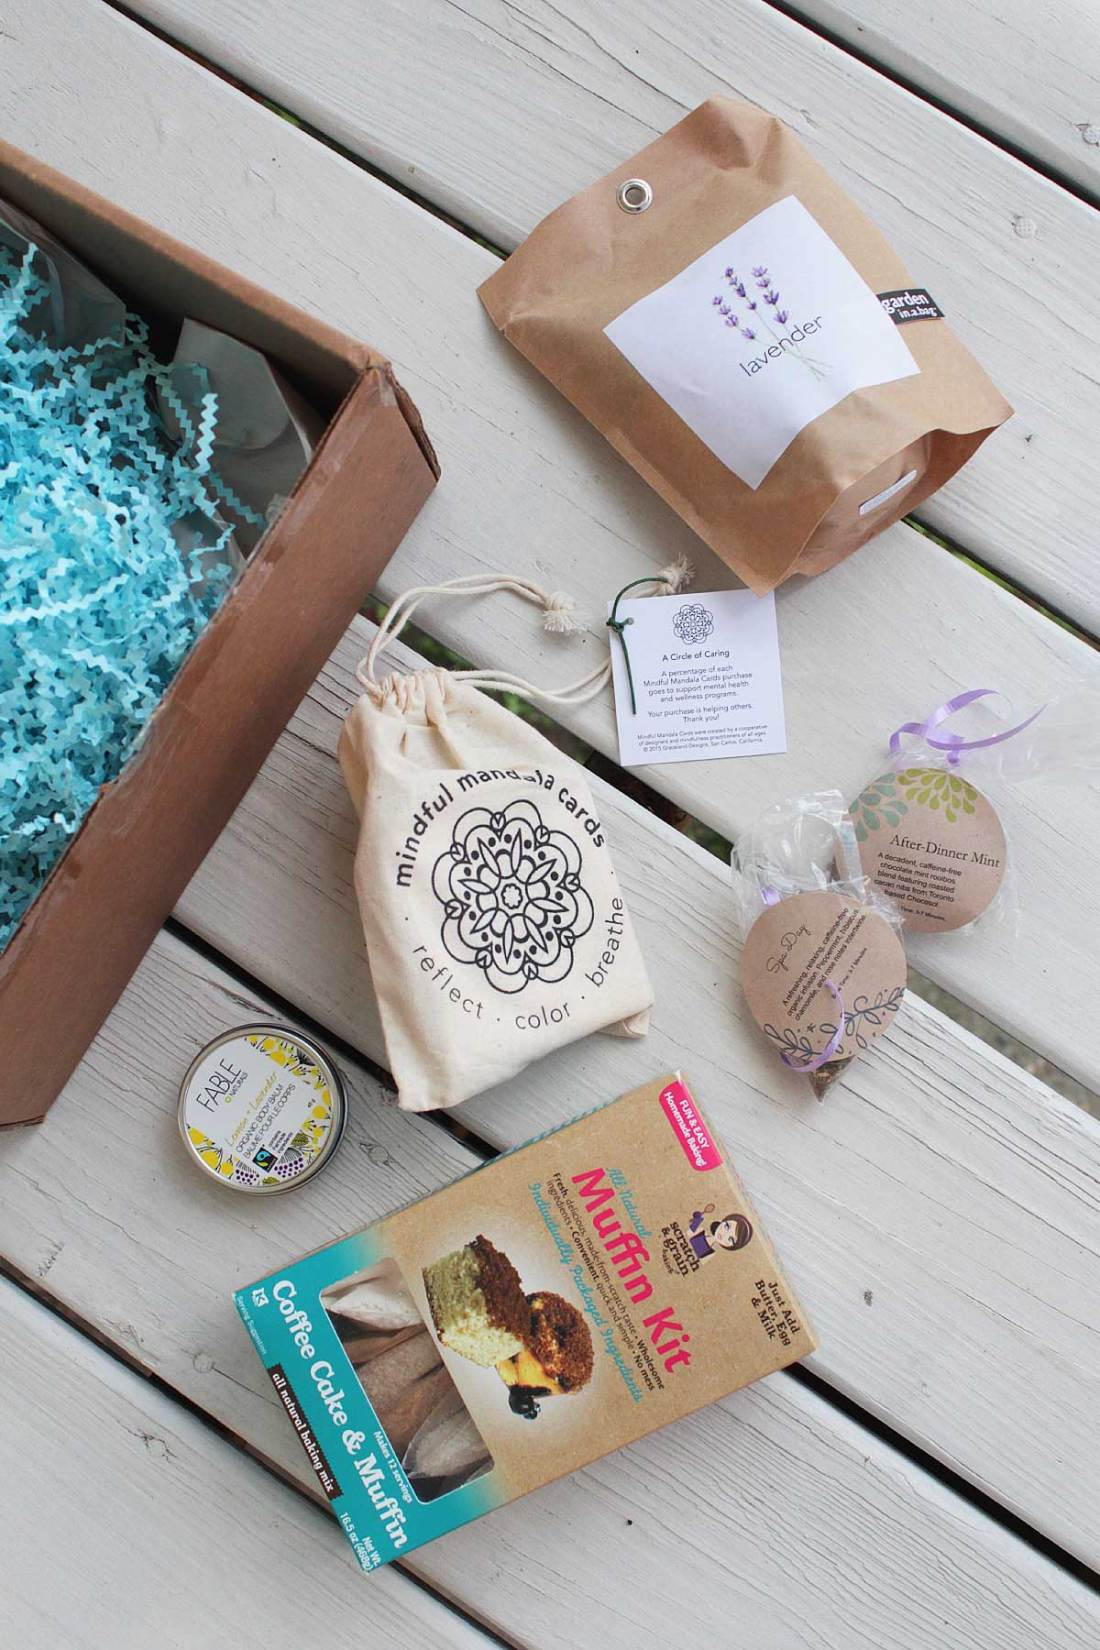 Channeling her love of psychology and passion for helping others, Janelle Martel created a subscription box for those who are suffering from chronic illness, experiencing mental health issues, or just need a little extra TLC.